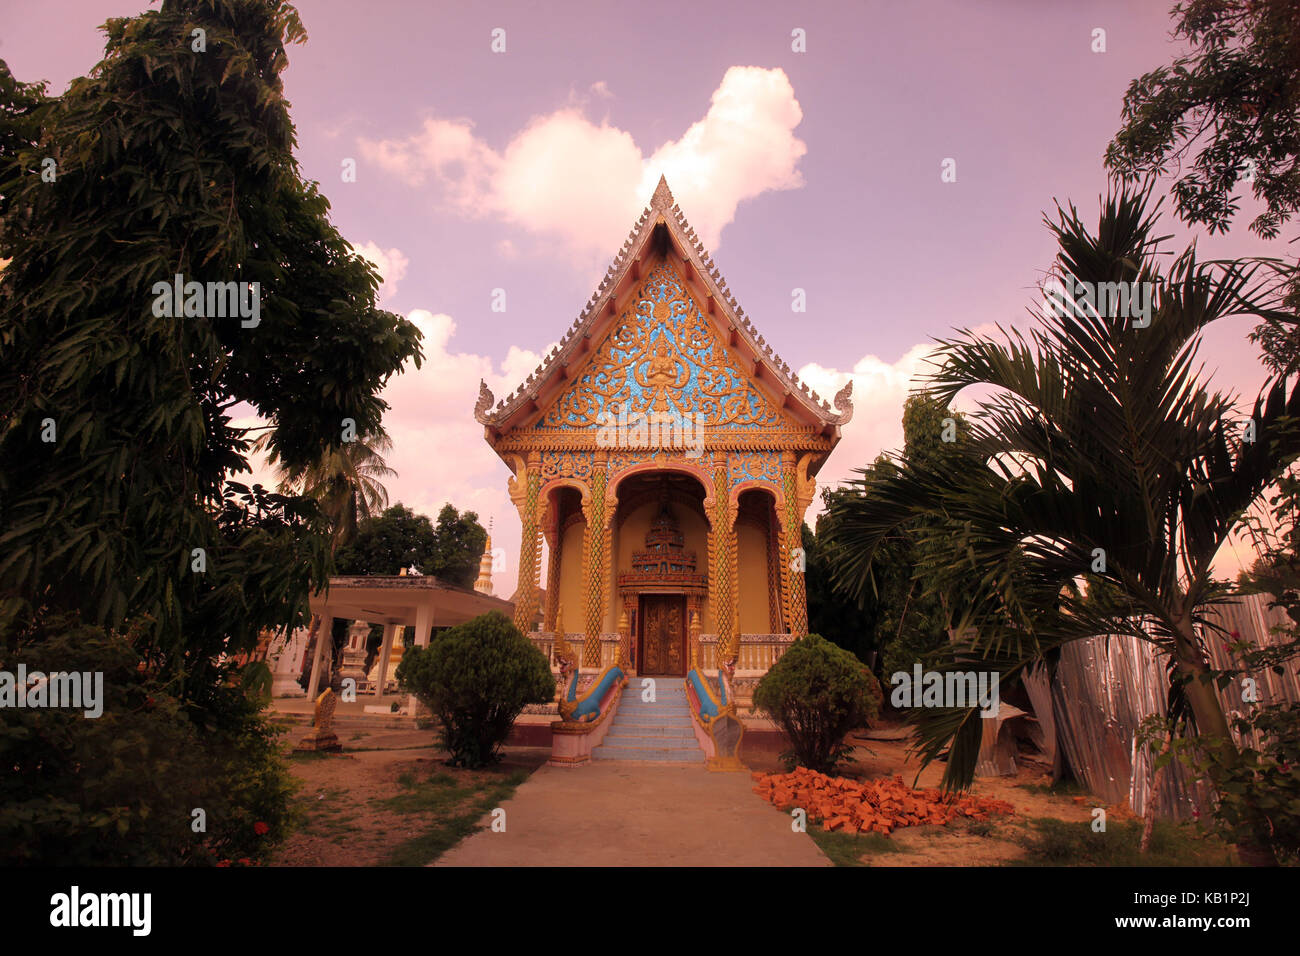 Asia, South-East Asia, Laos, Centrally Laos, Savannakhet, Mekong, temple, Stock Photo